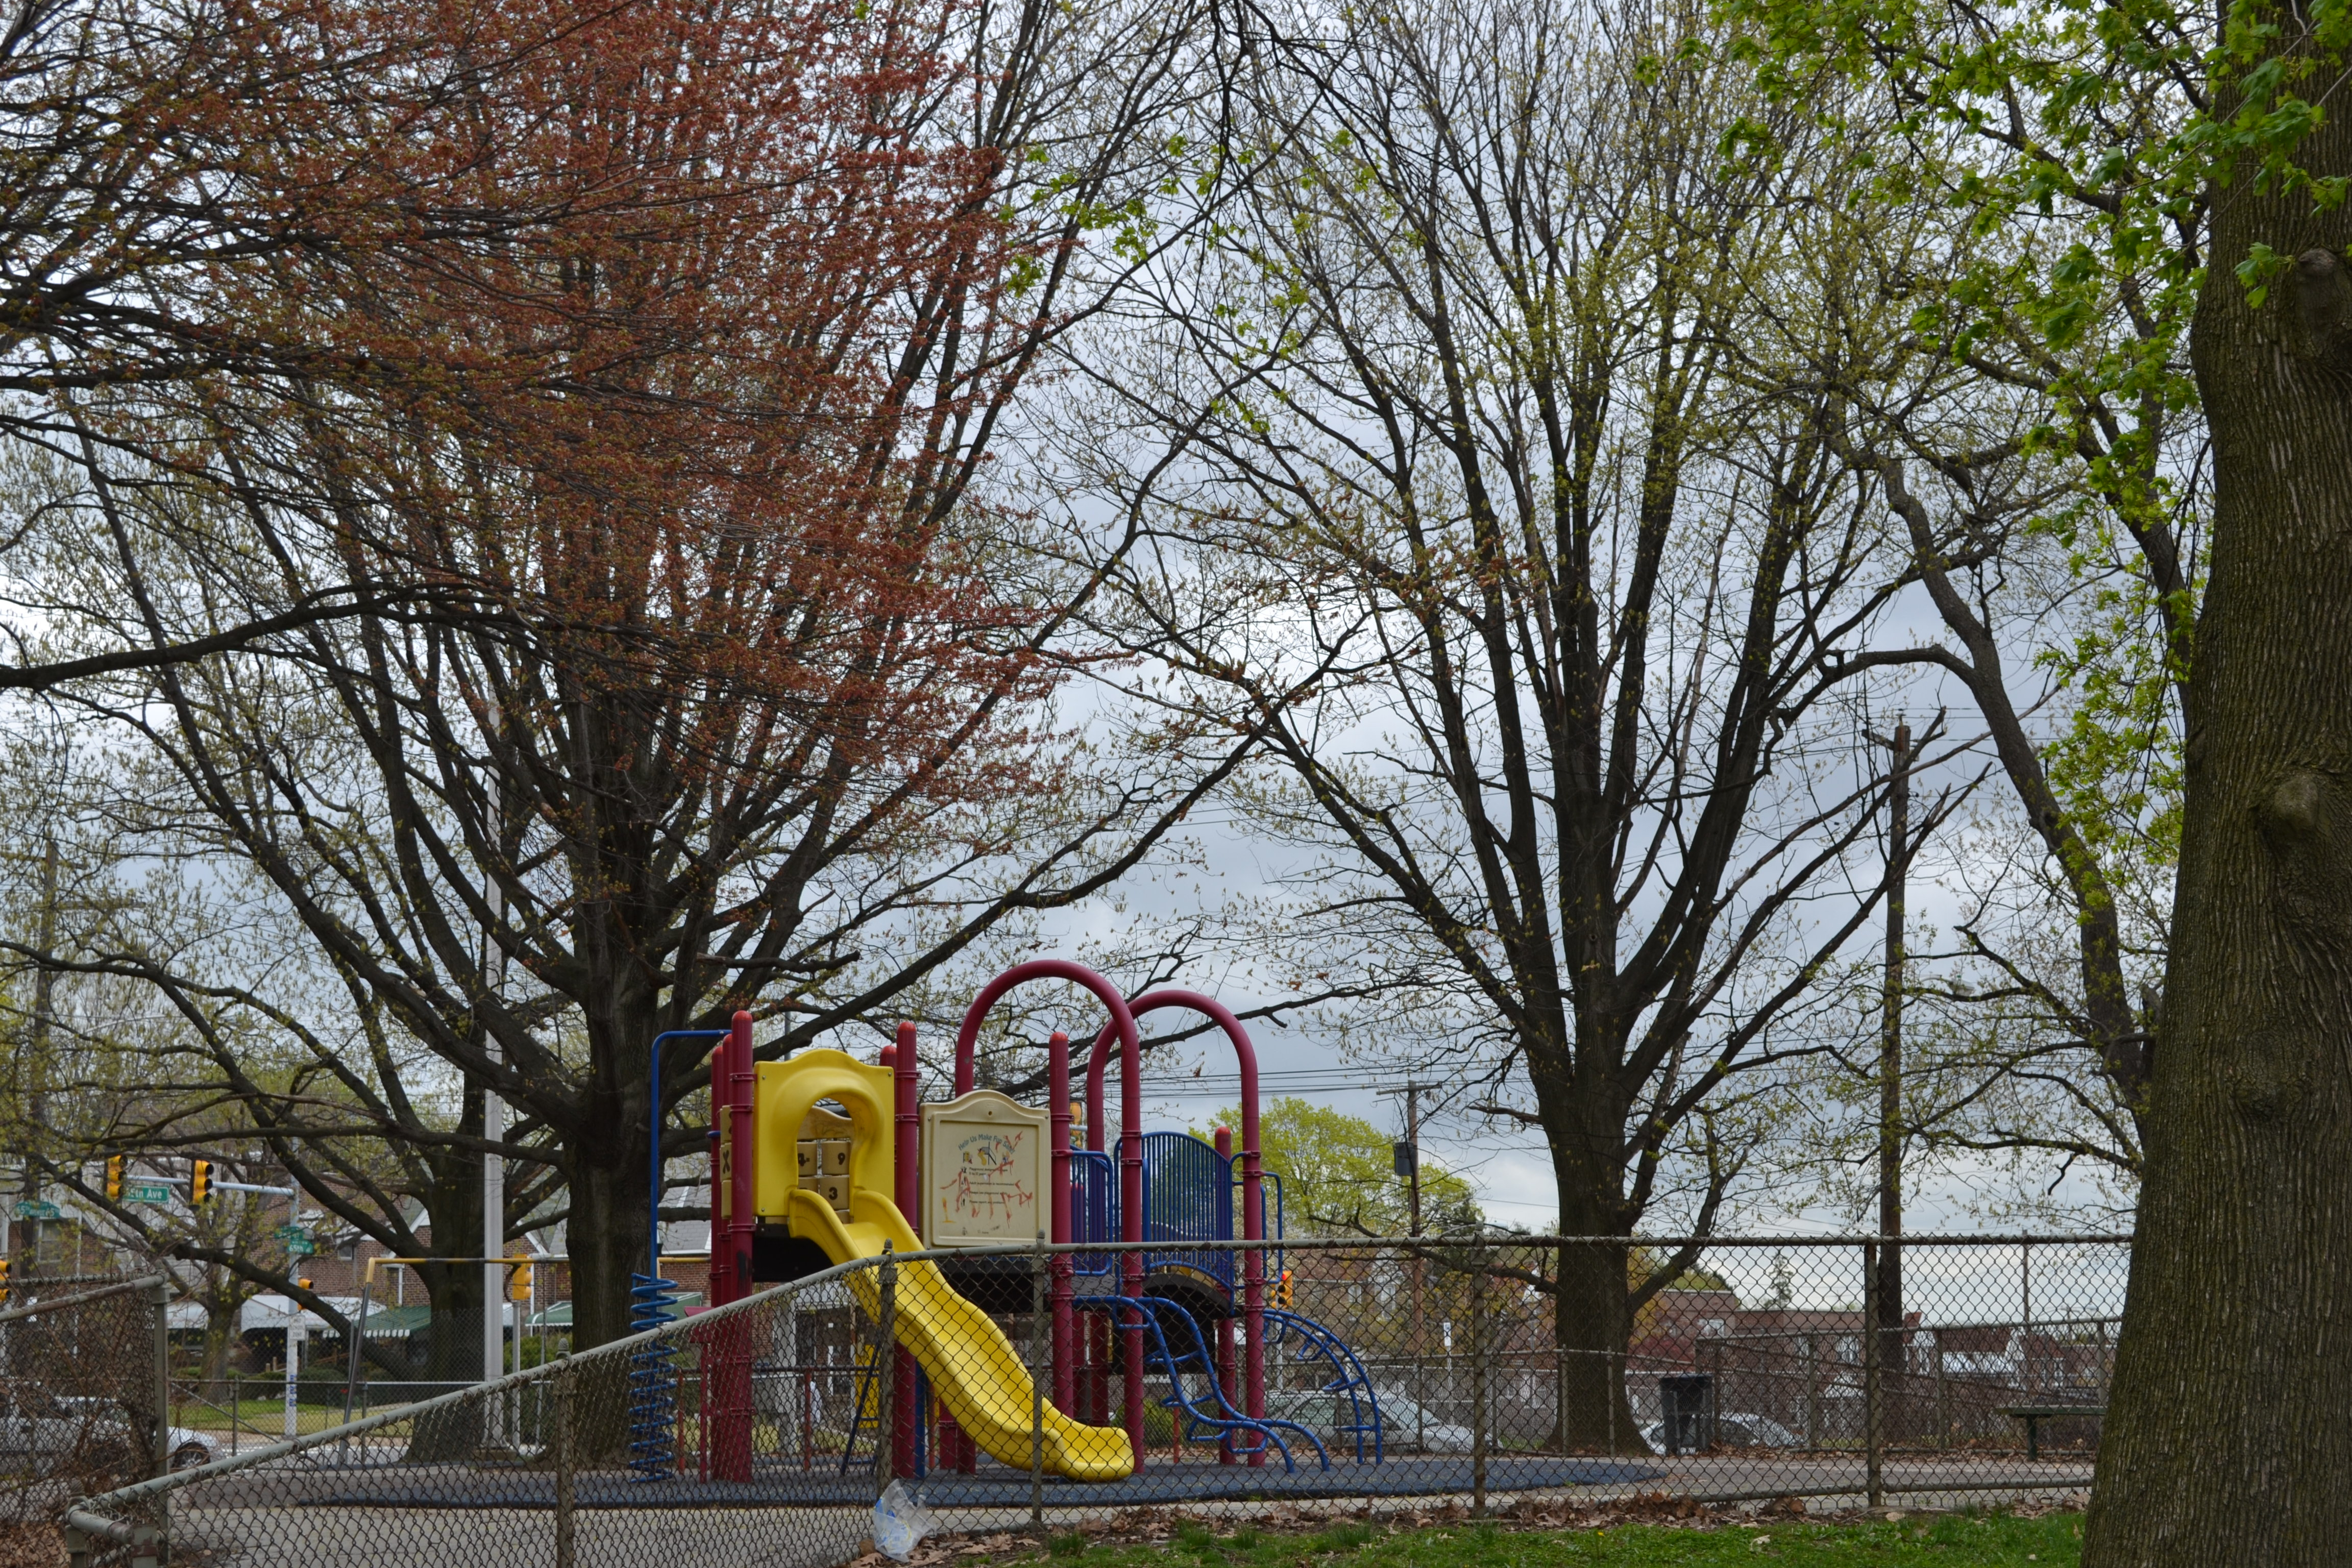 Sturgis Playground now has two main areas of playground equipment